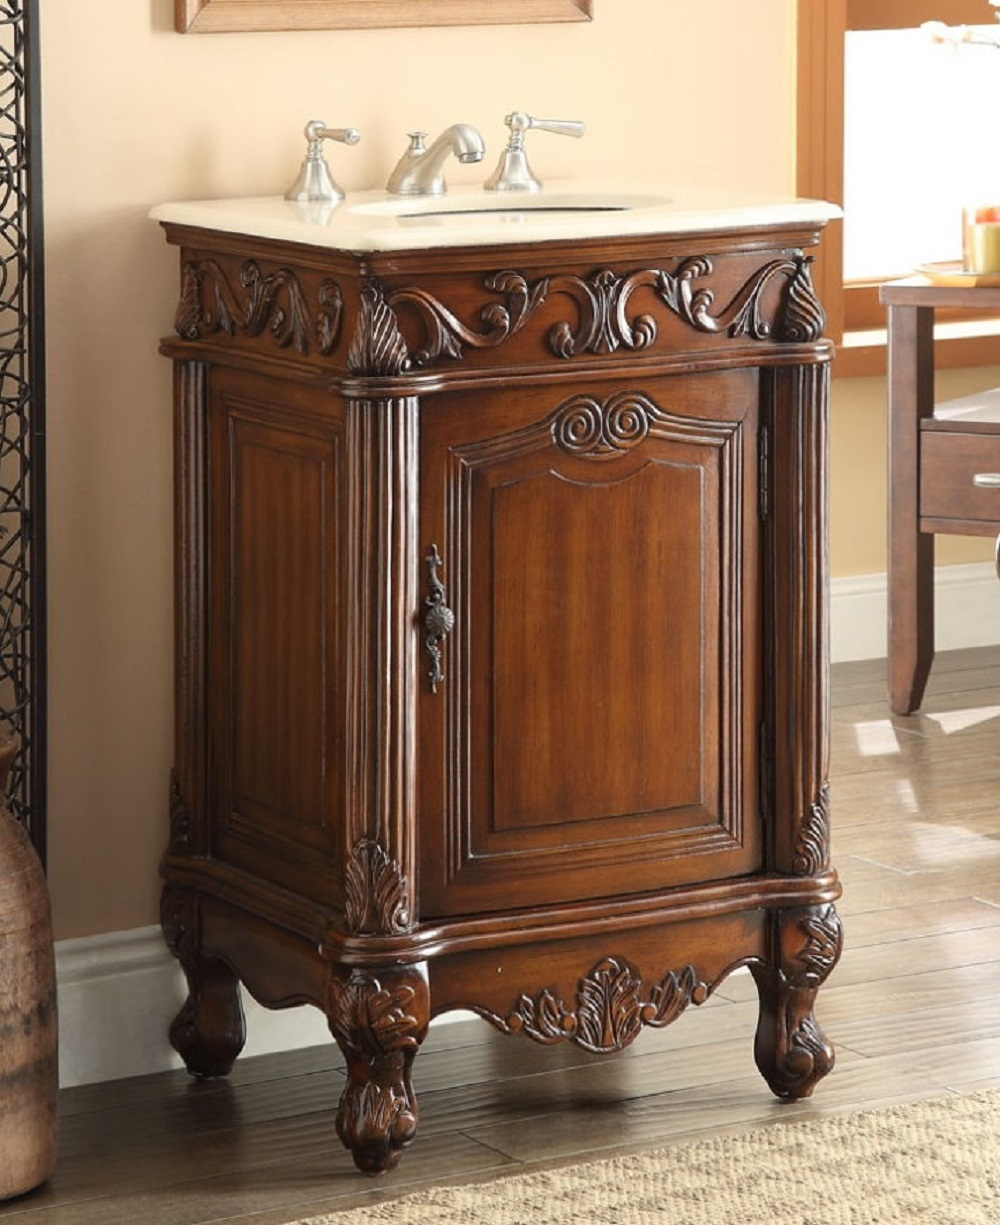 21 inch bathroom vanity traditional style medium brown color 21wx21dx34h ccf2801mtk for Traditional style bathroom vanities